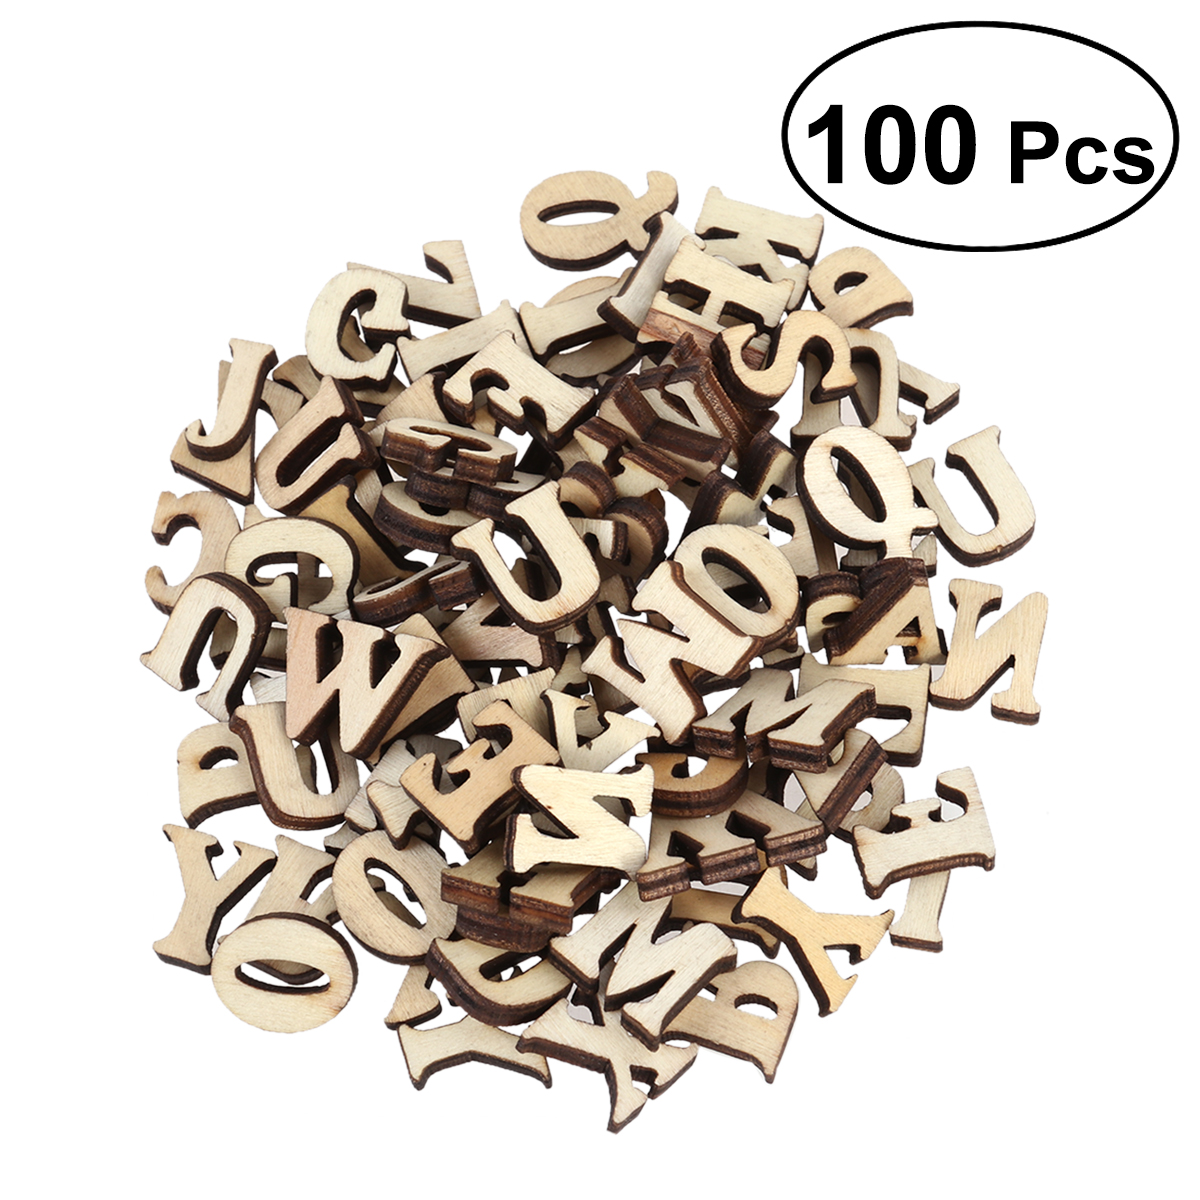 100 Pcs Wooden Laser Cutout Pentagram Shape Craft DIY Card Making Scrapbooking